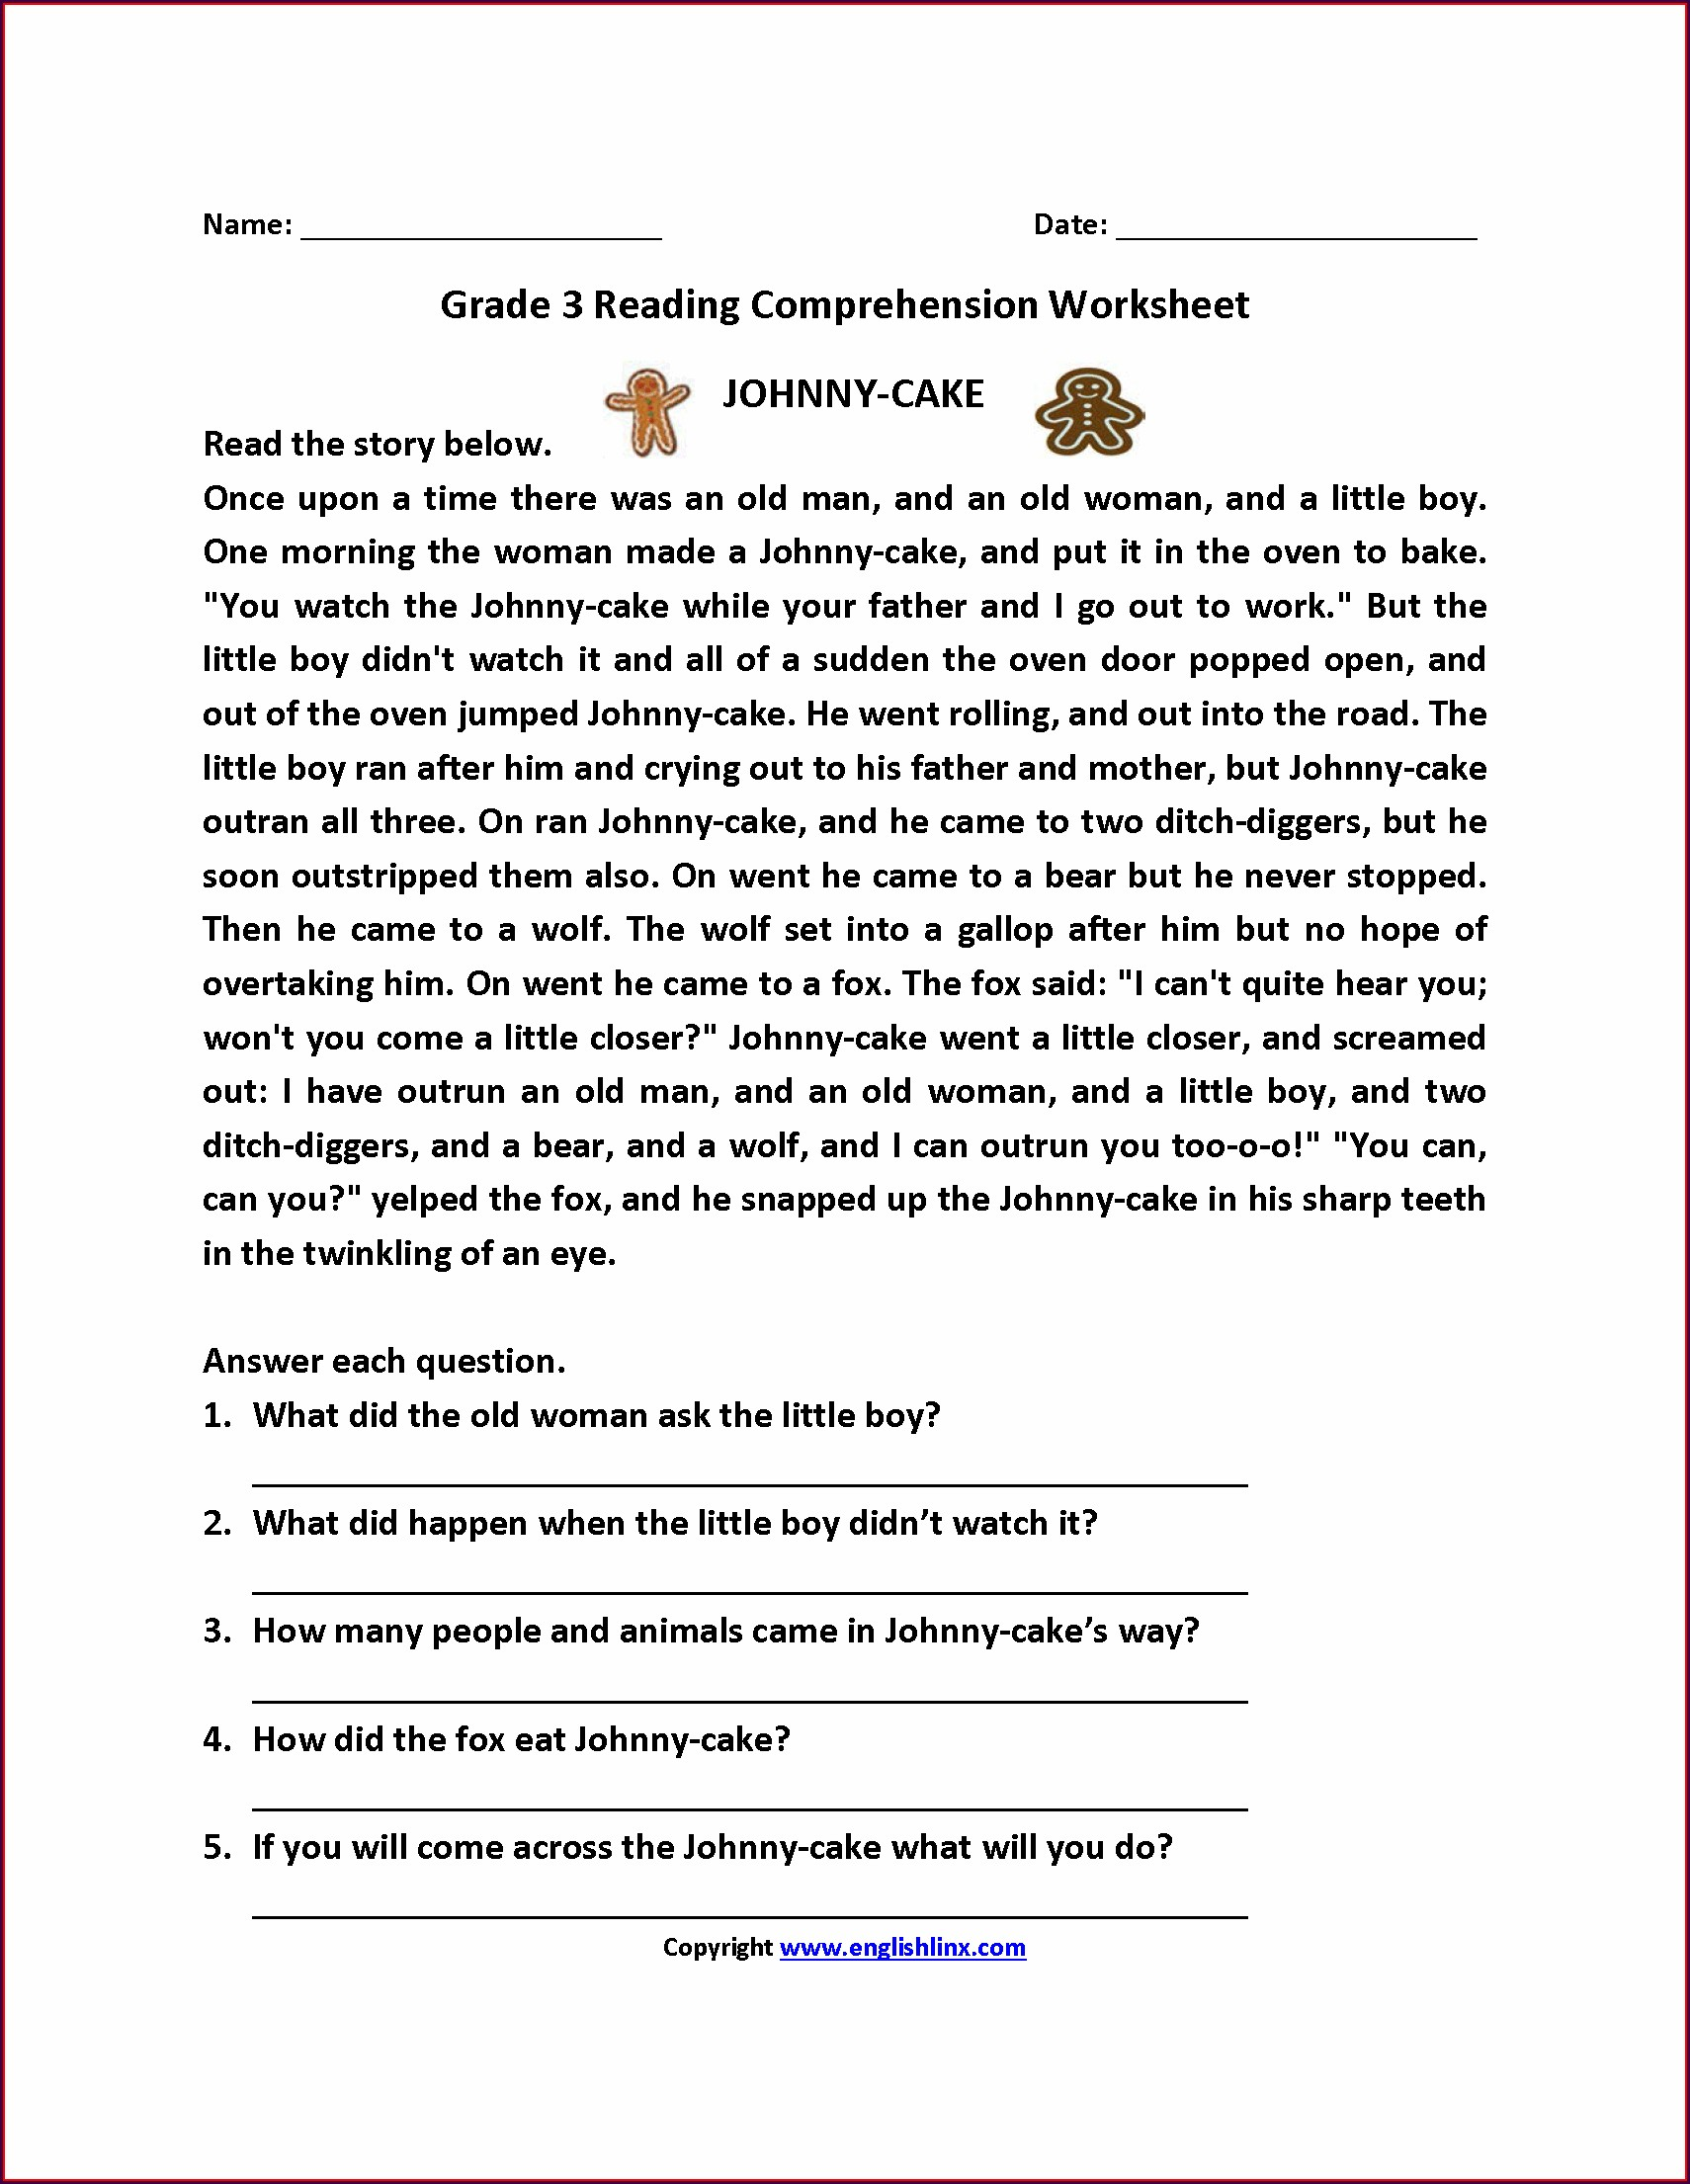 Comprehension Worksheet For Grade 2 Pdf